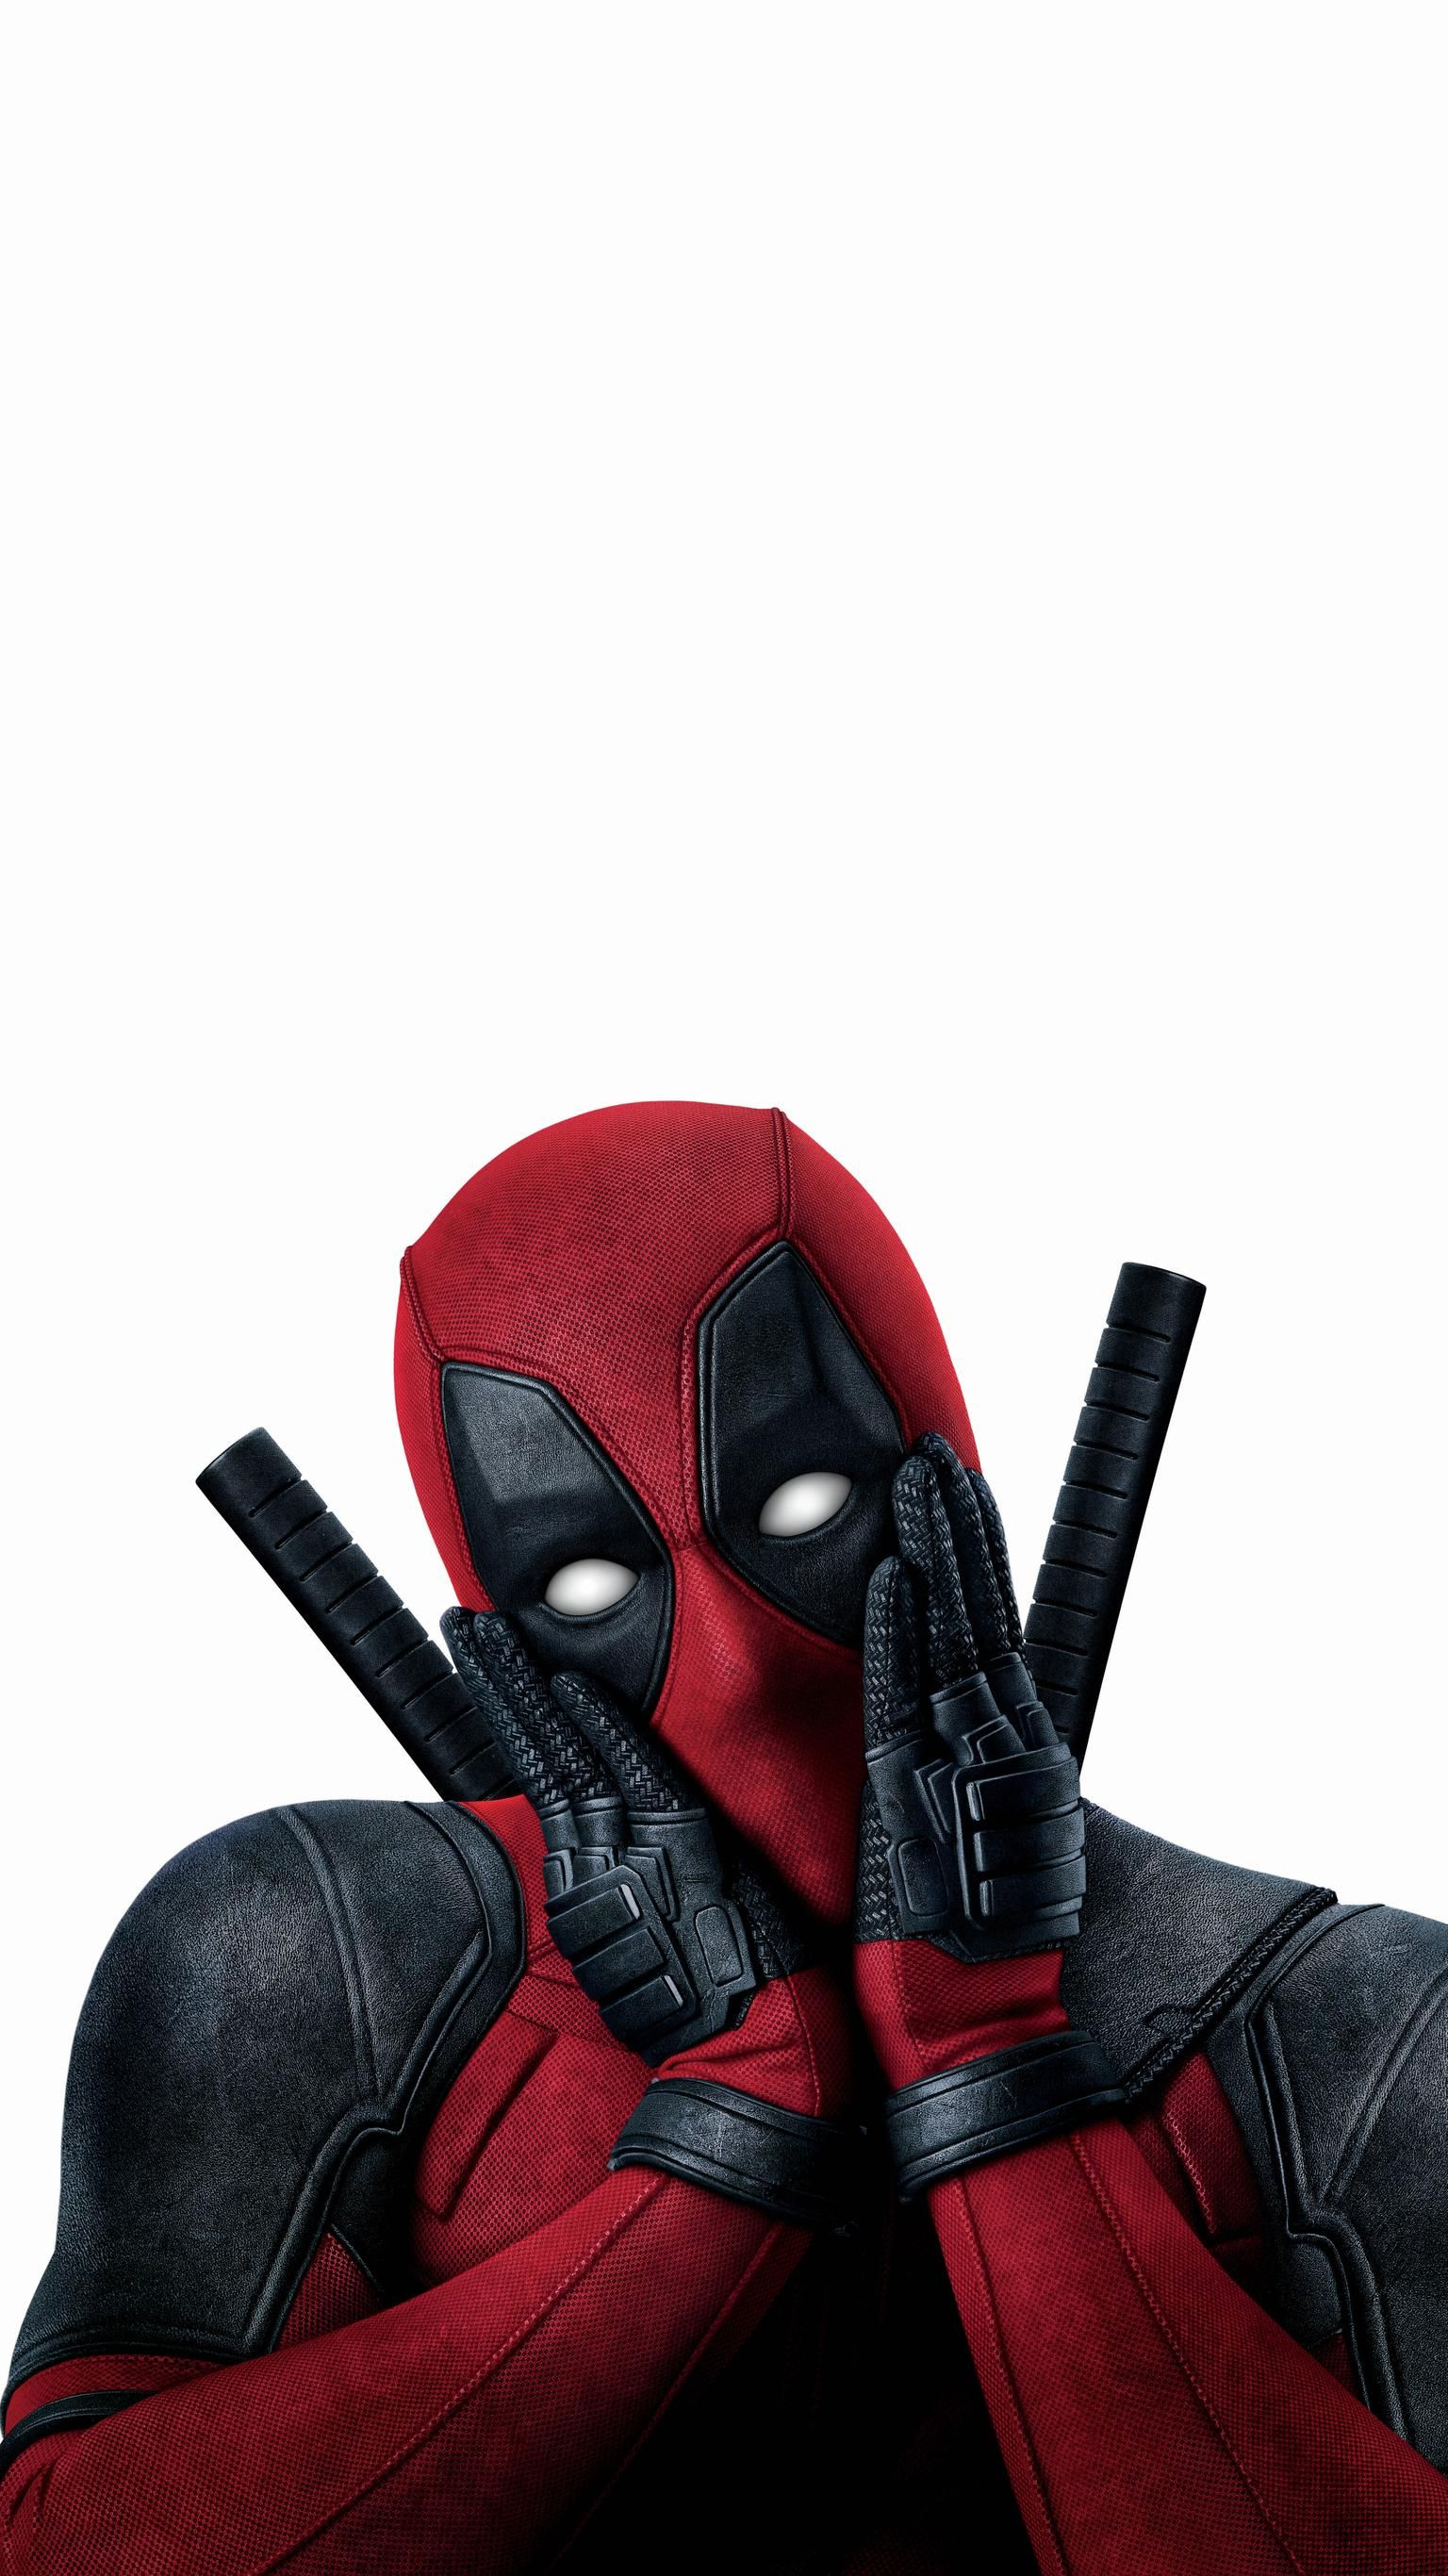 Deadpool 2 2018 Phone Wallpaper Moviemania Deadpool Wallpaper Deadpool And Spiderman Deadpool Wallpaper Iphone